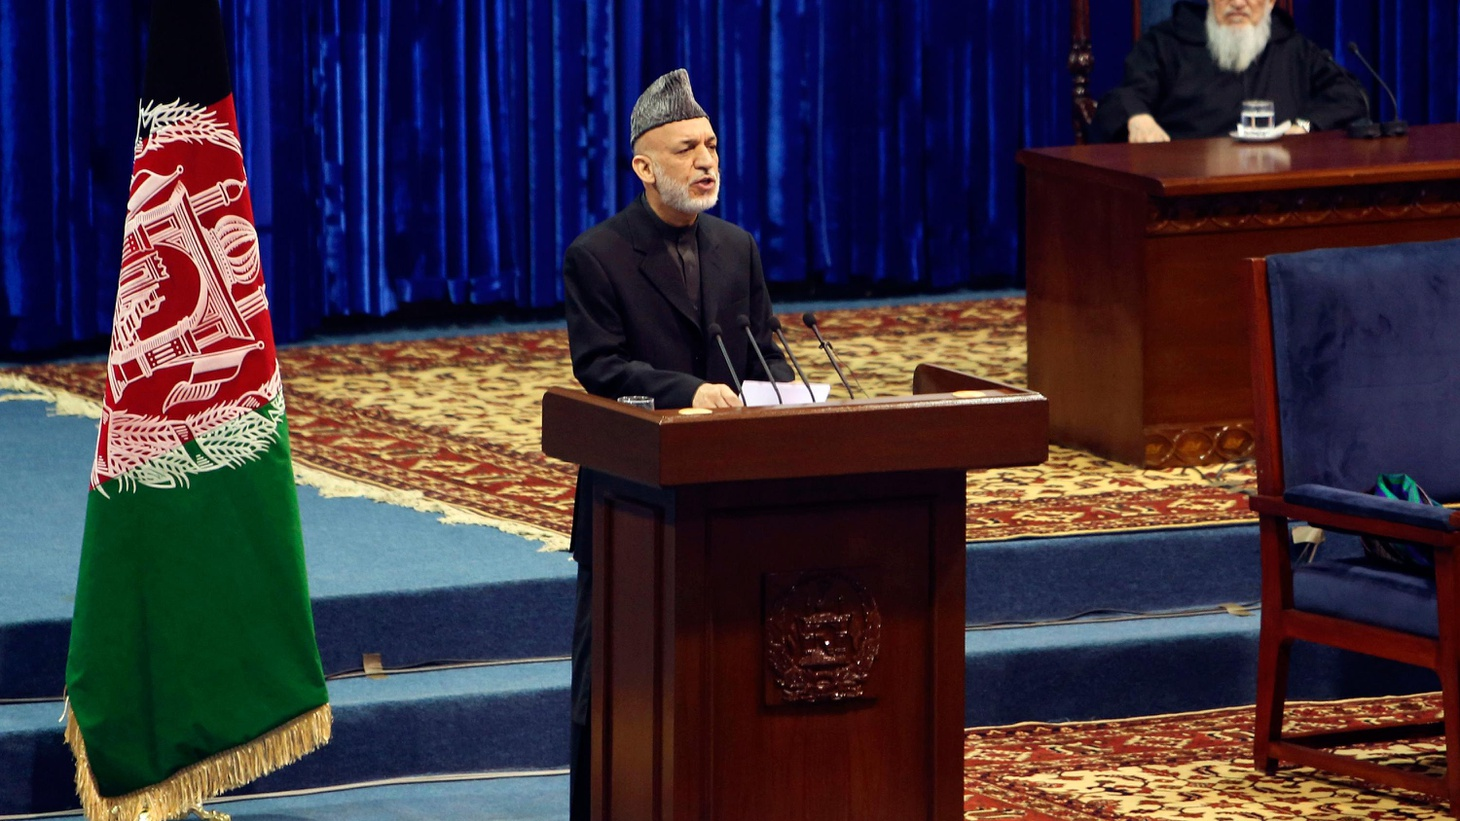 """At today's meeting of elders, Afghan President Karzai said, """"I don't trust the Americans and they don't trust me."""" Has he changed his mind about yesterday's troop deal?"""